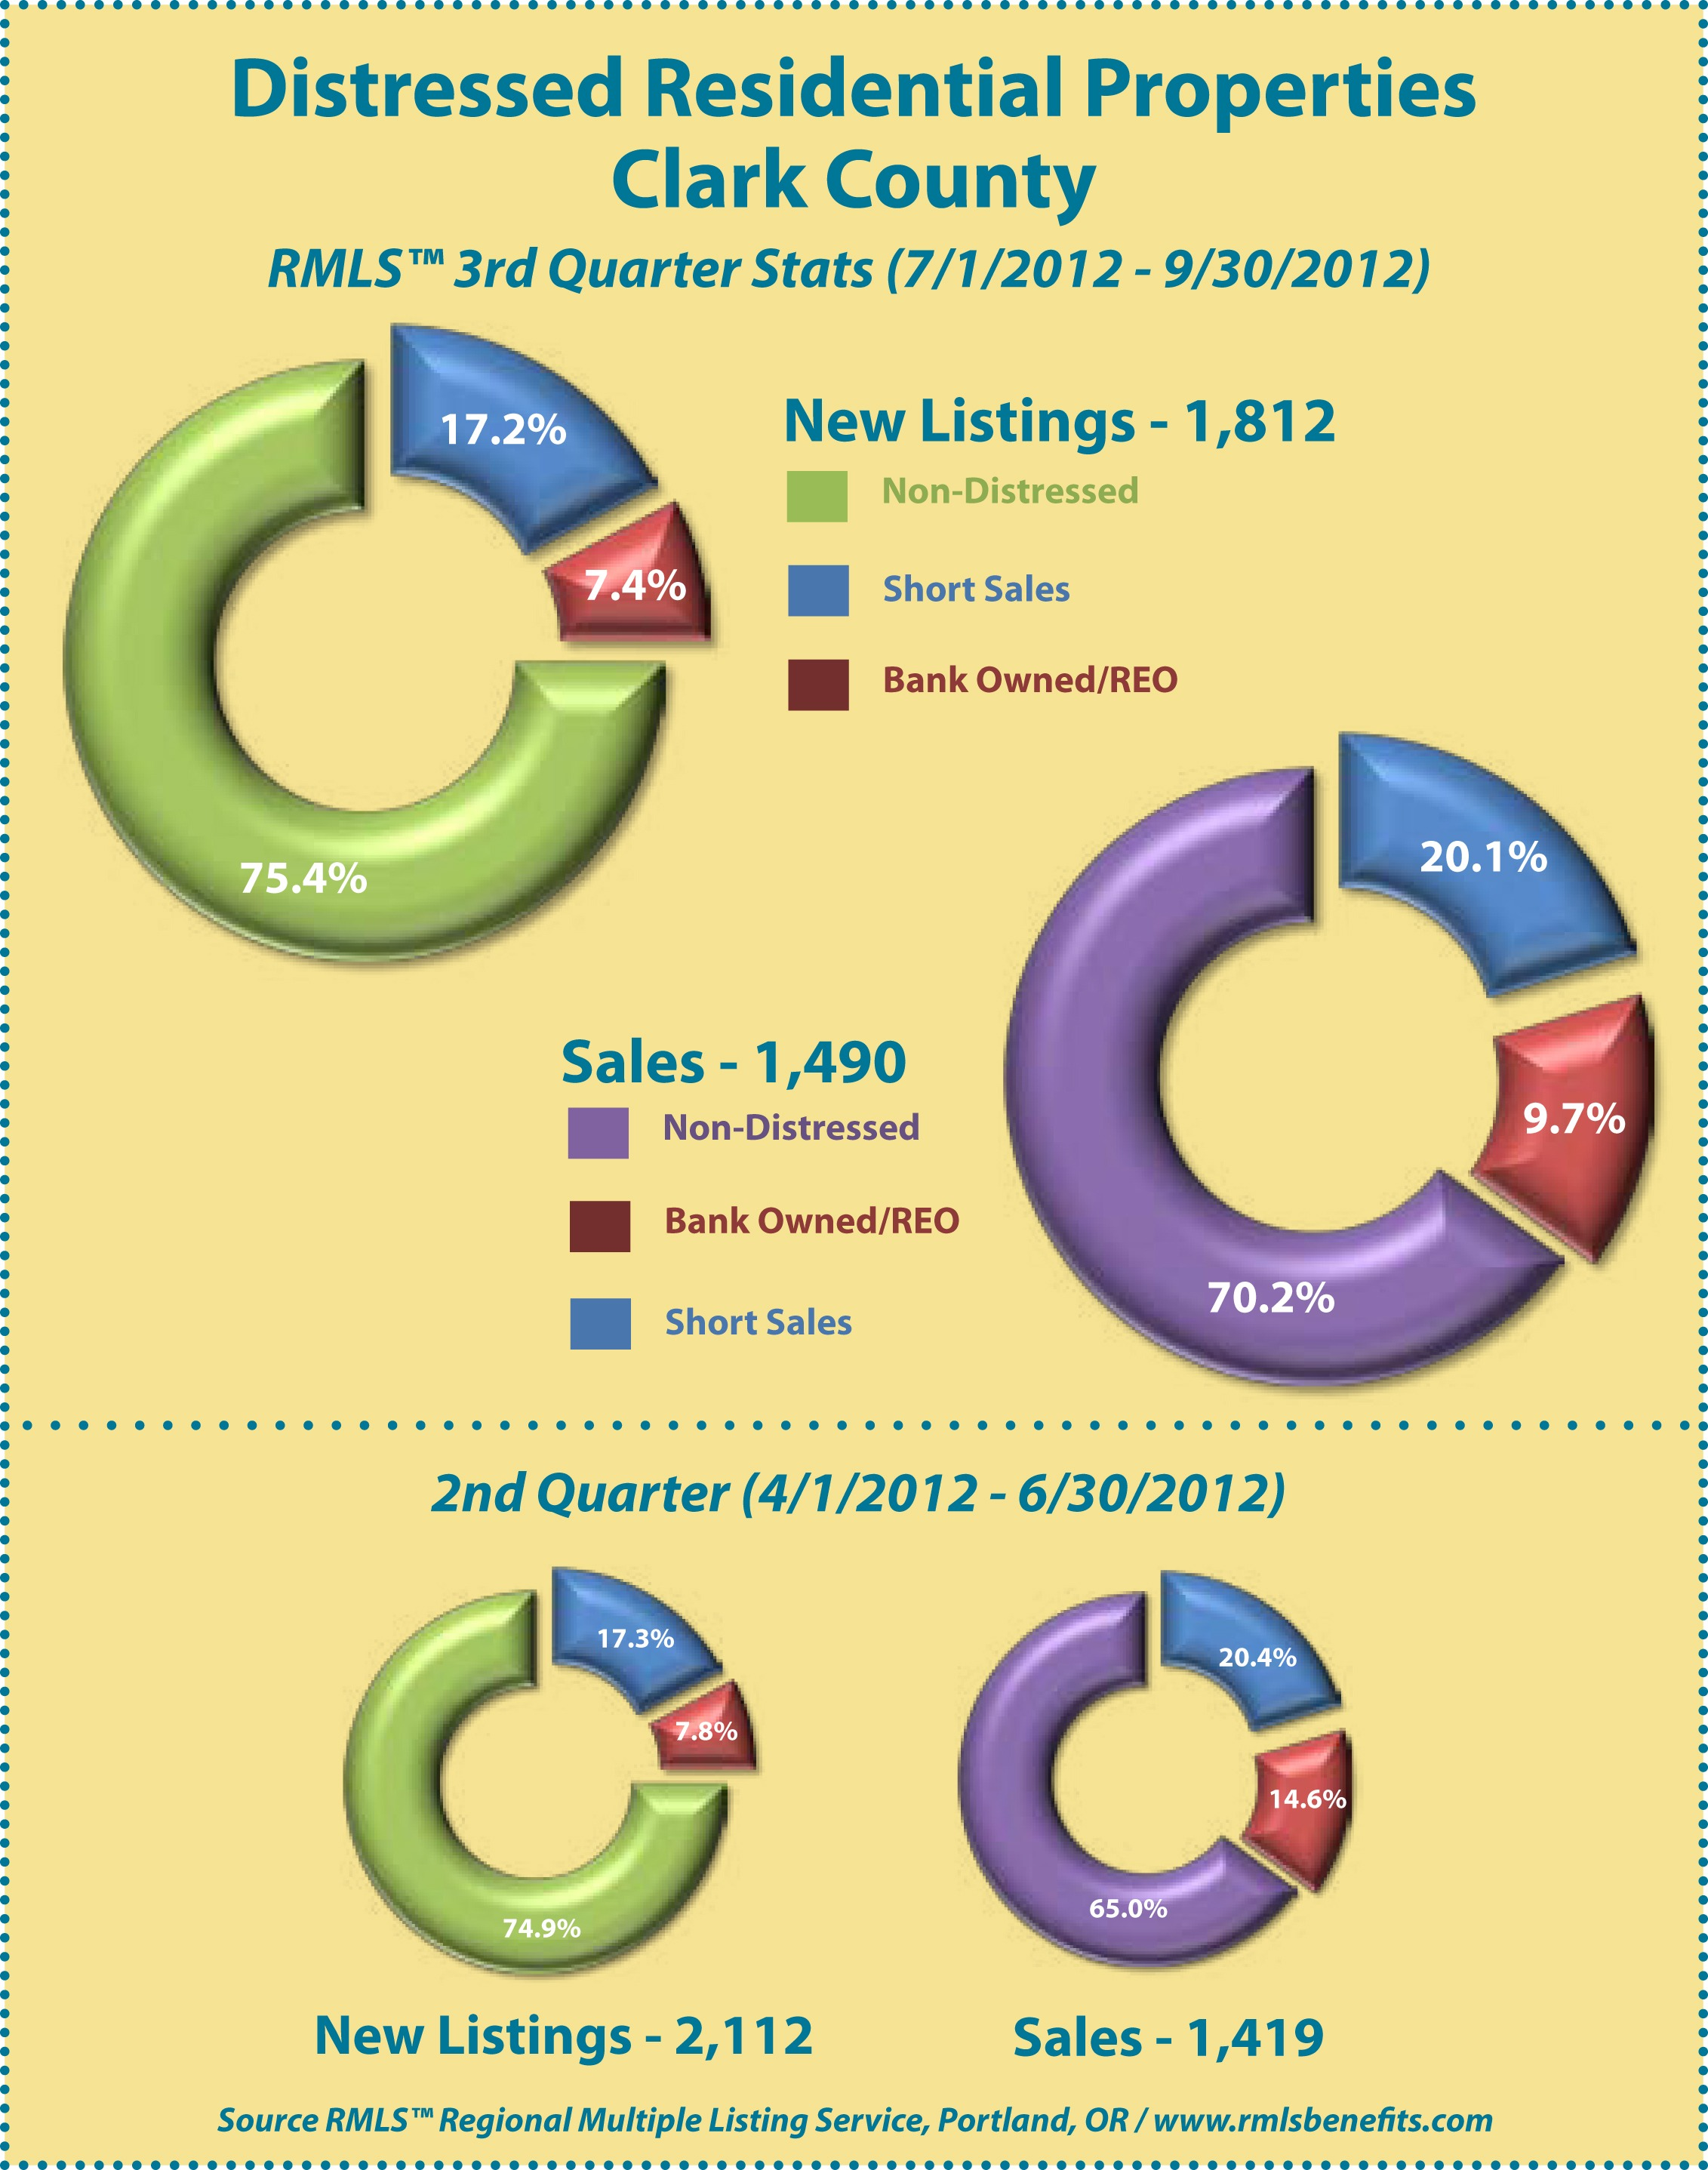 Distressed Homes - Clark County, WA 3rd Quarter 2012